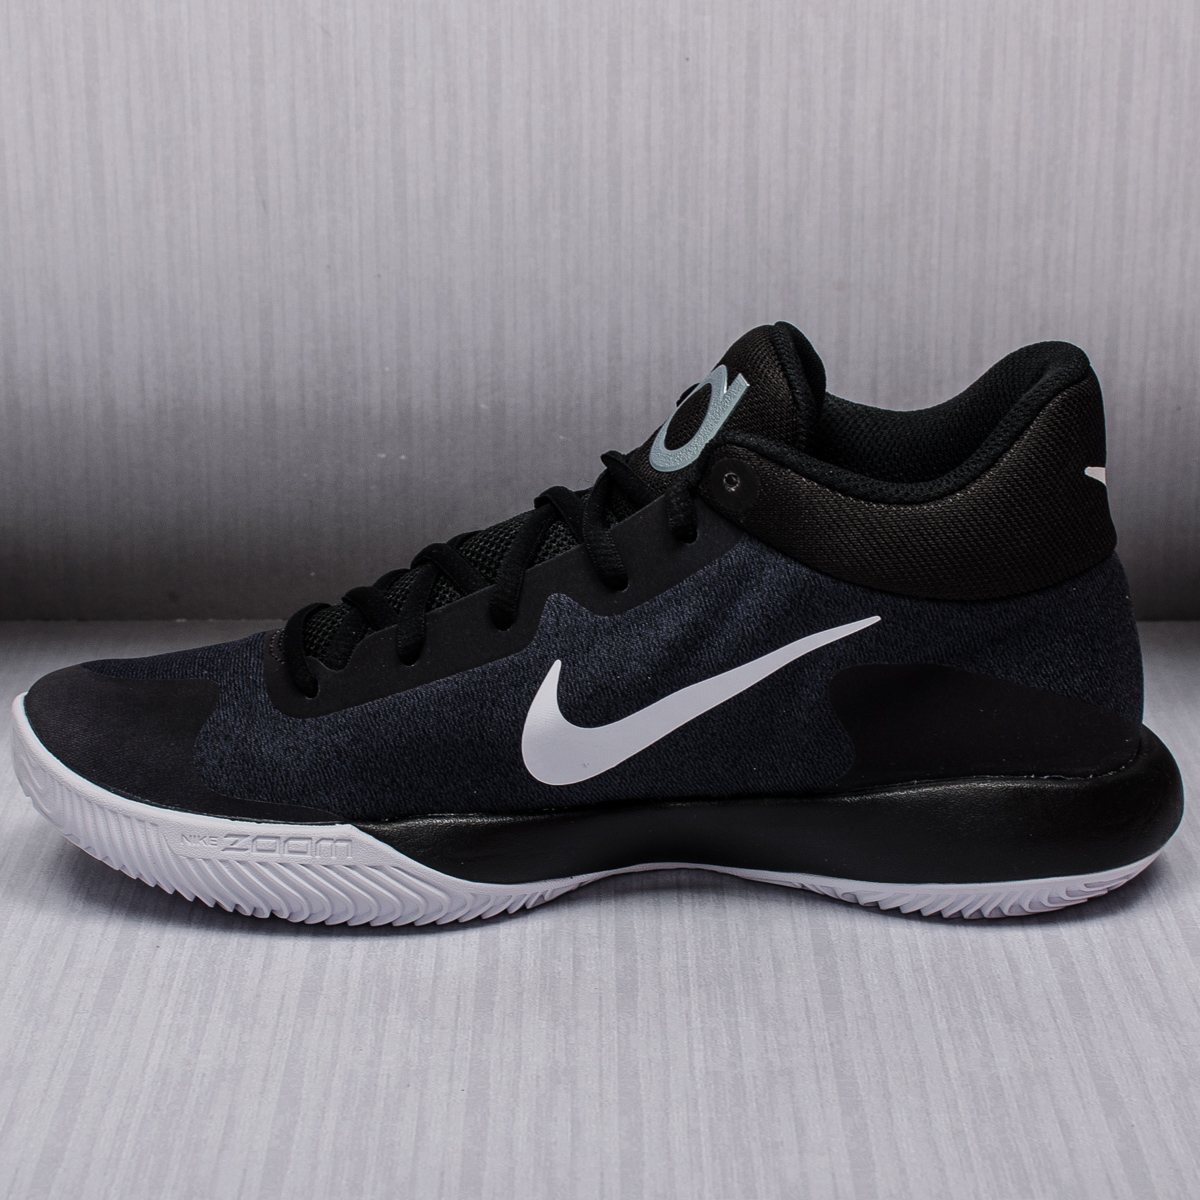 a5a74ffab504 Nike Kd Trey 5 Shoes Kd Trey 5 Review